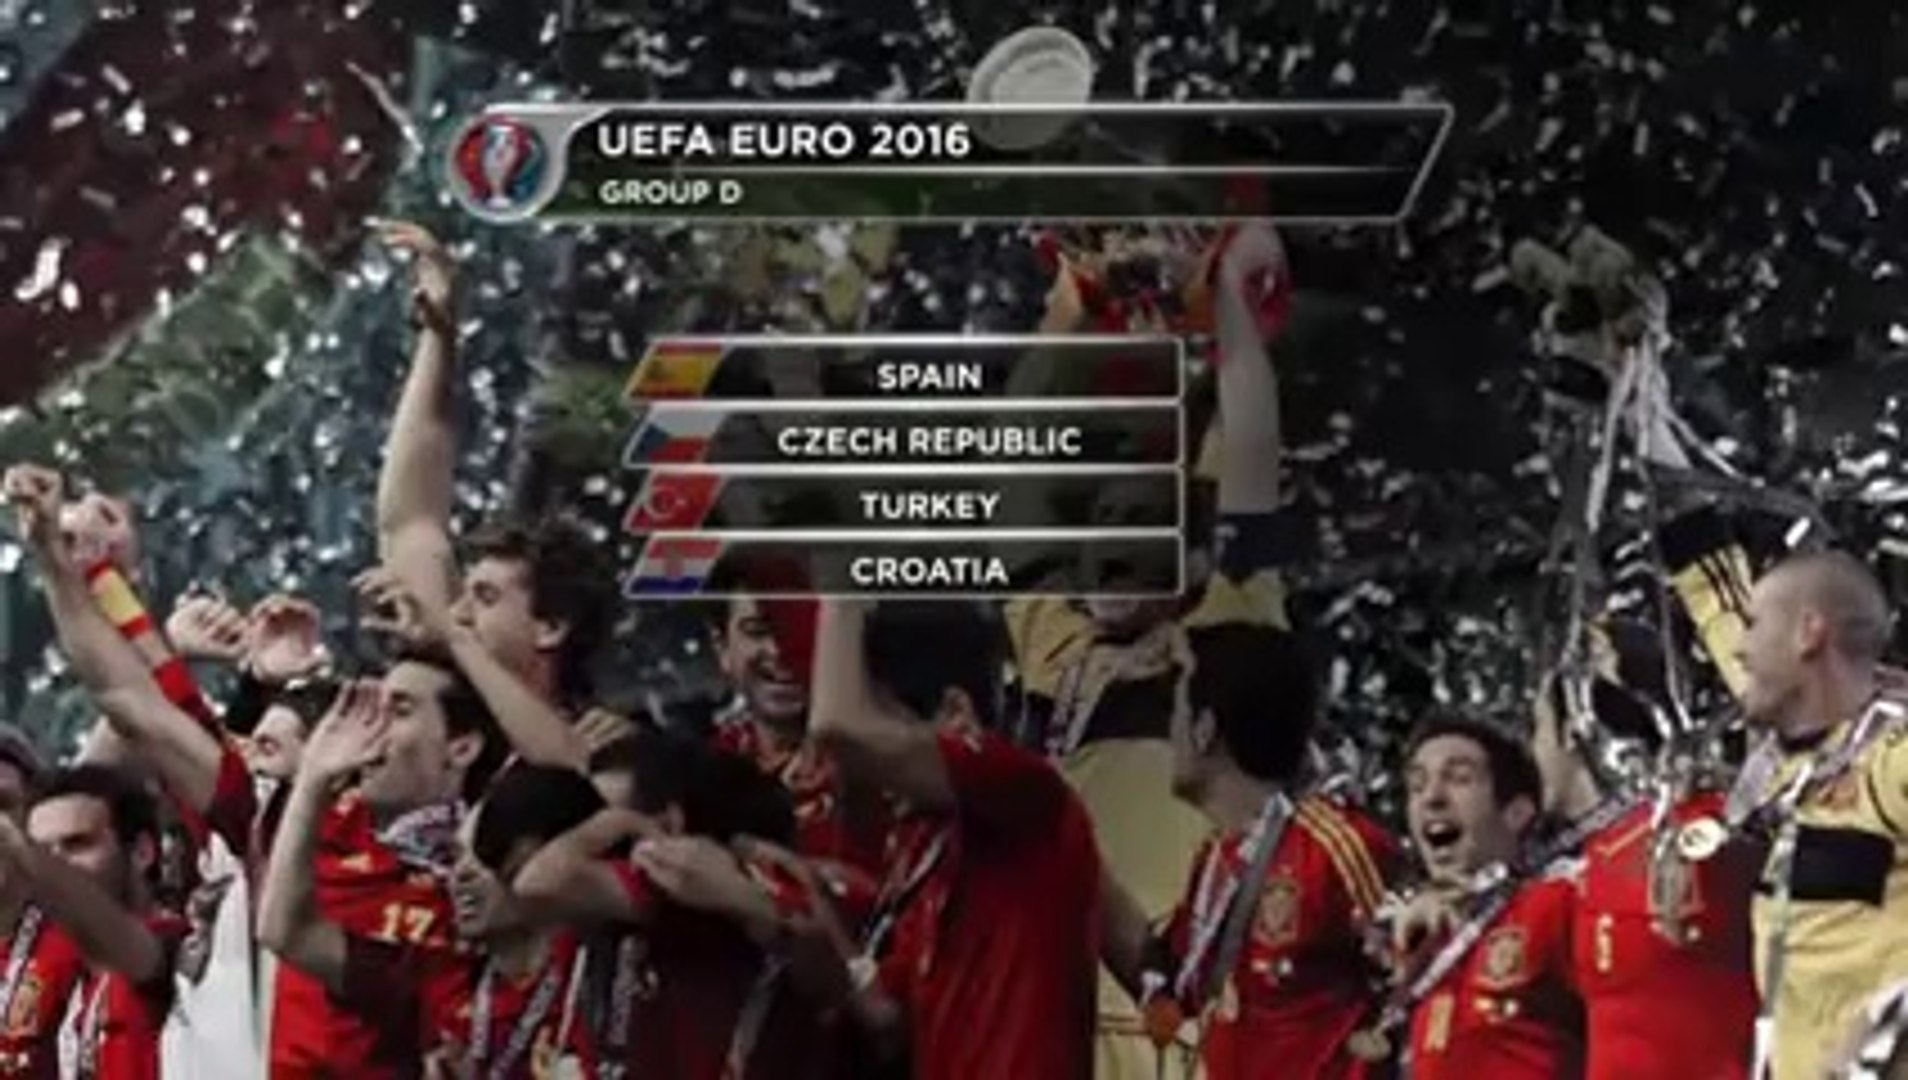 Euro 2016 Group Stage Draw- Spain get tricky draw